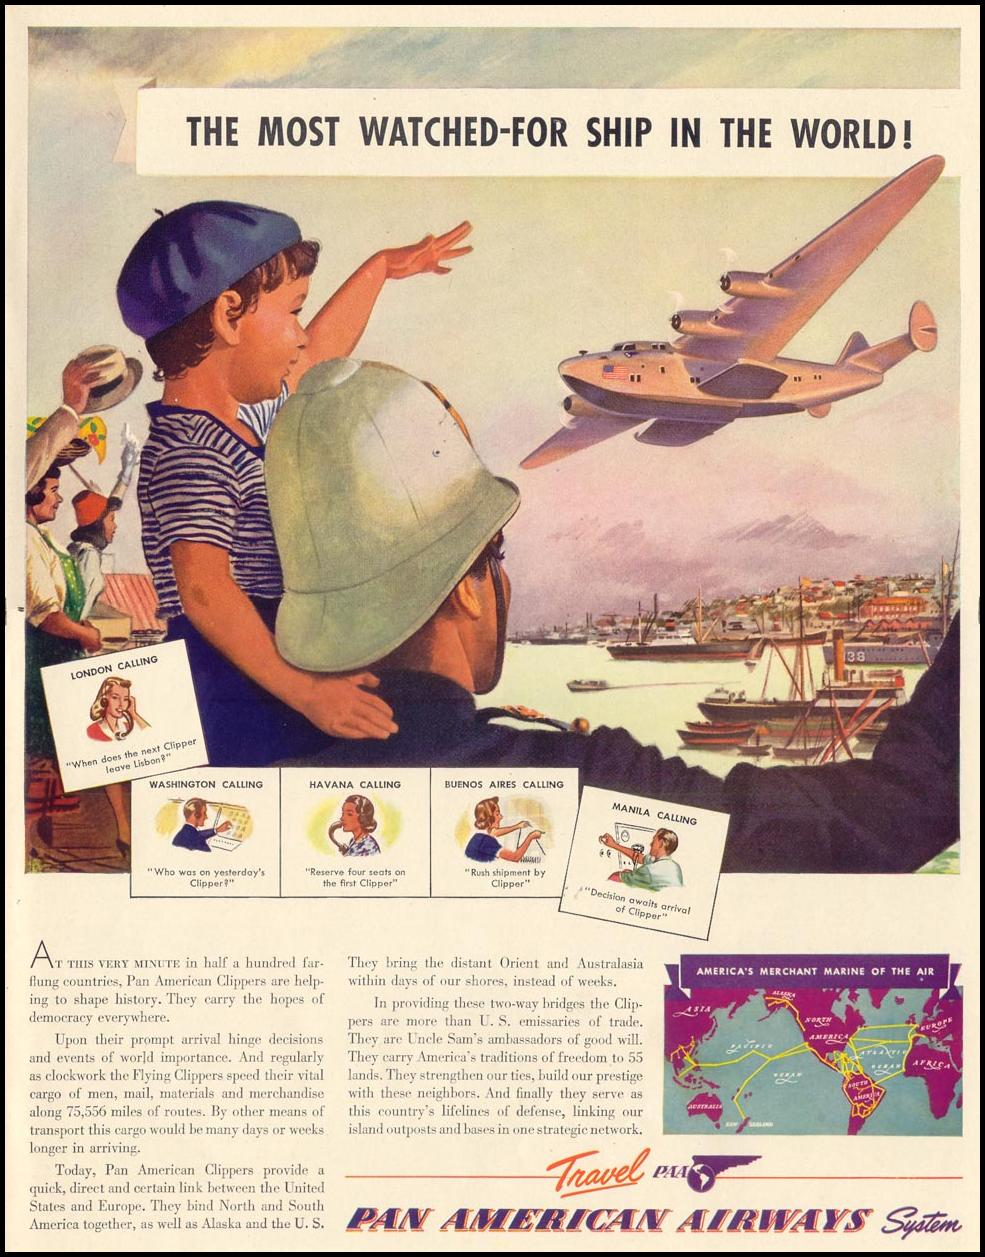 AIR TRAVEL LIFE 10/13/1941